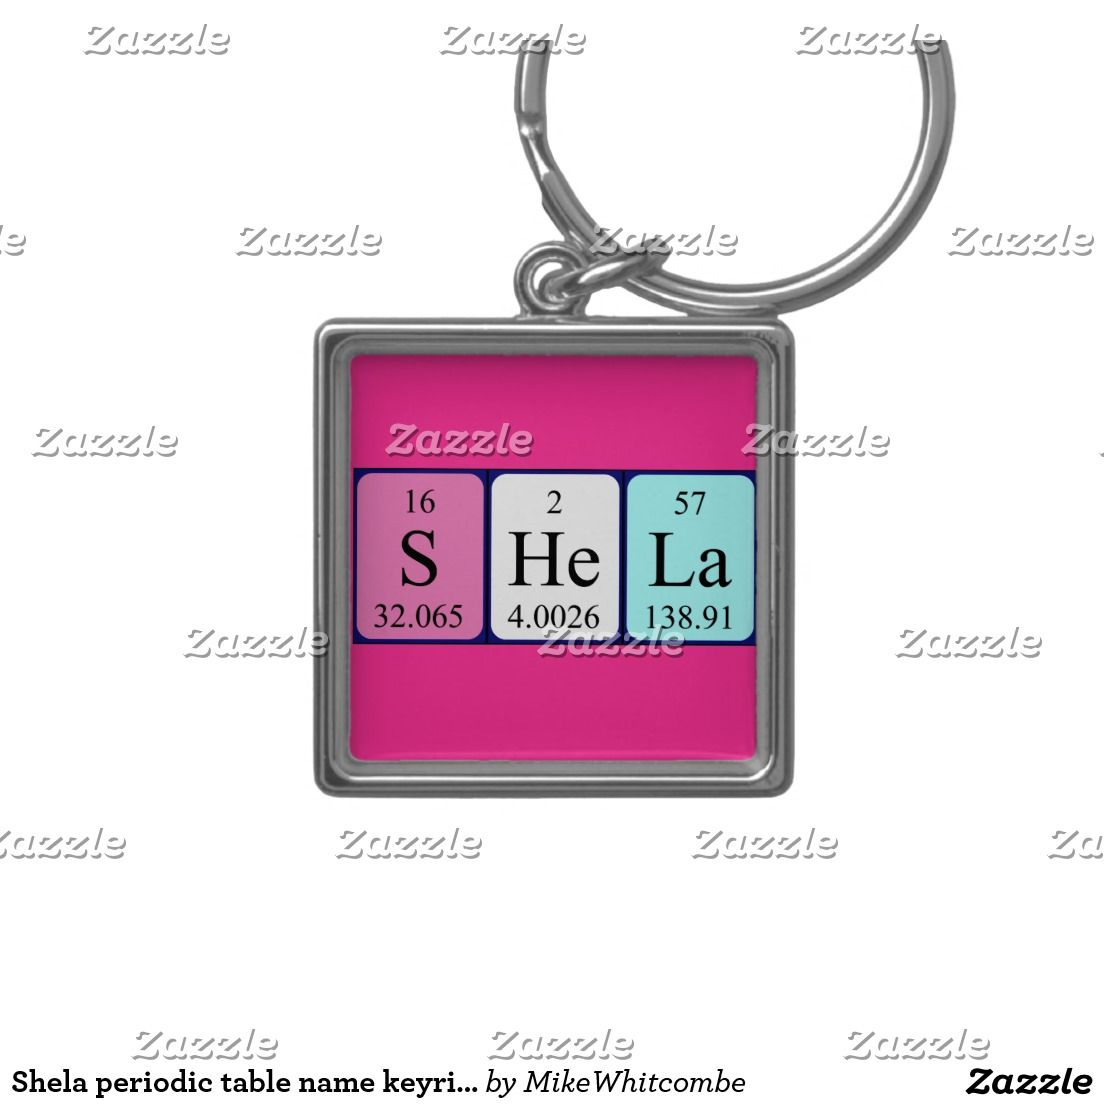 Shela periodic table name keyring silver colored square key ring shela periodic table name keyring silver colored square key ring gamestrikefo Image collections